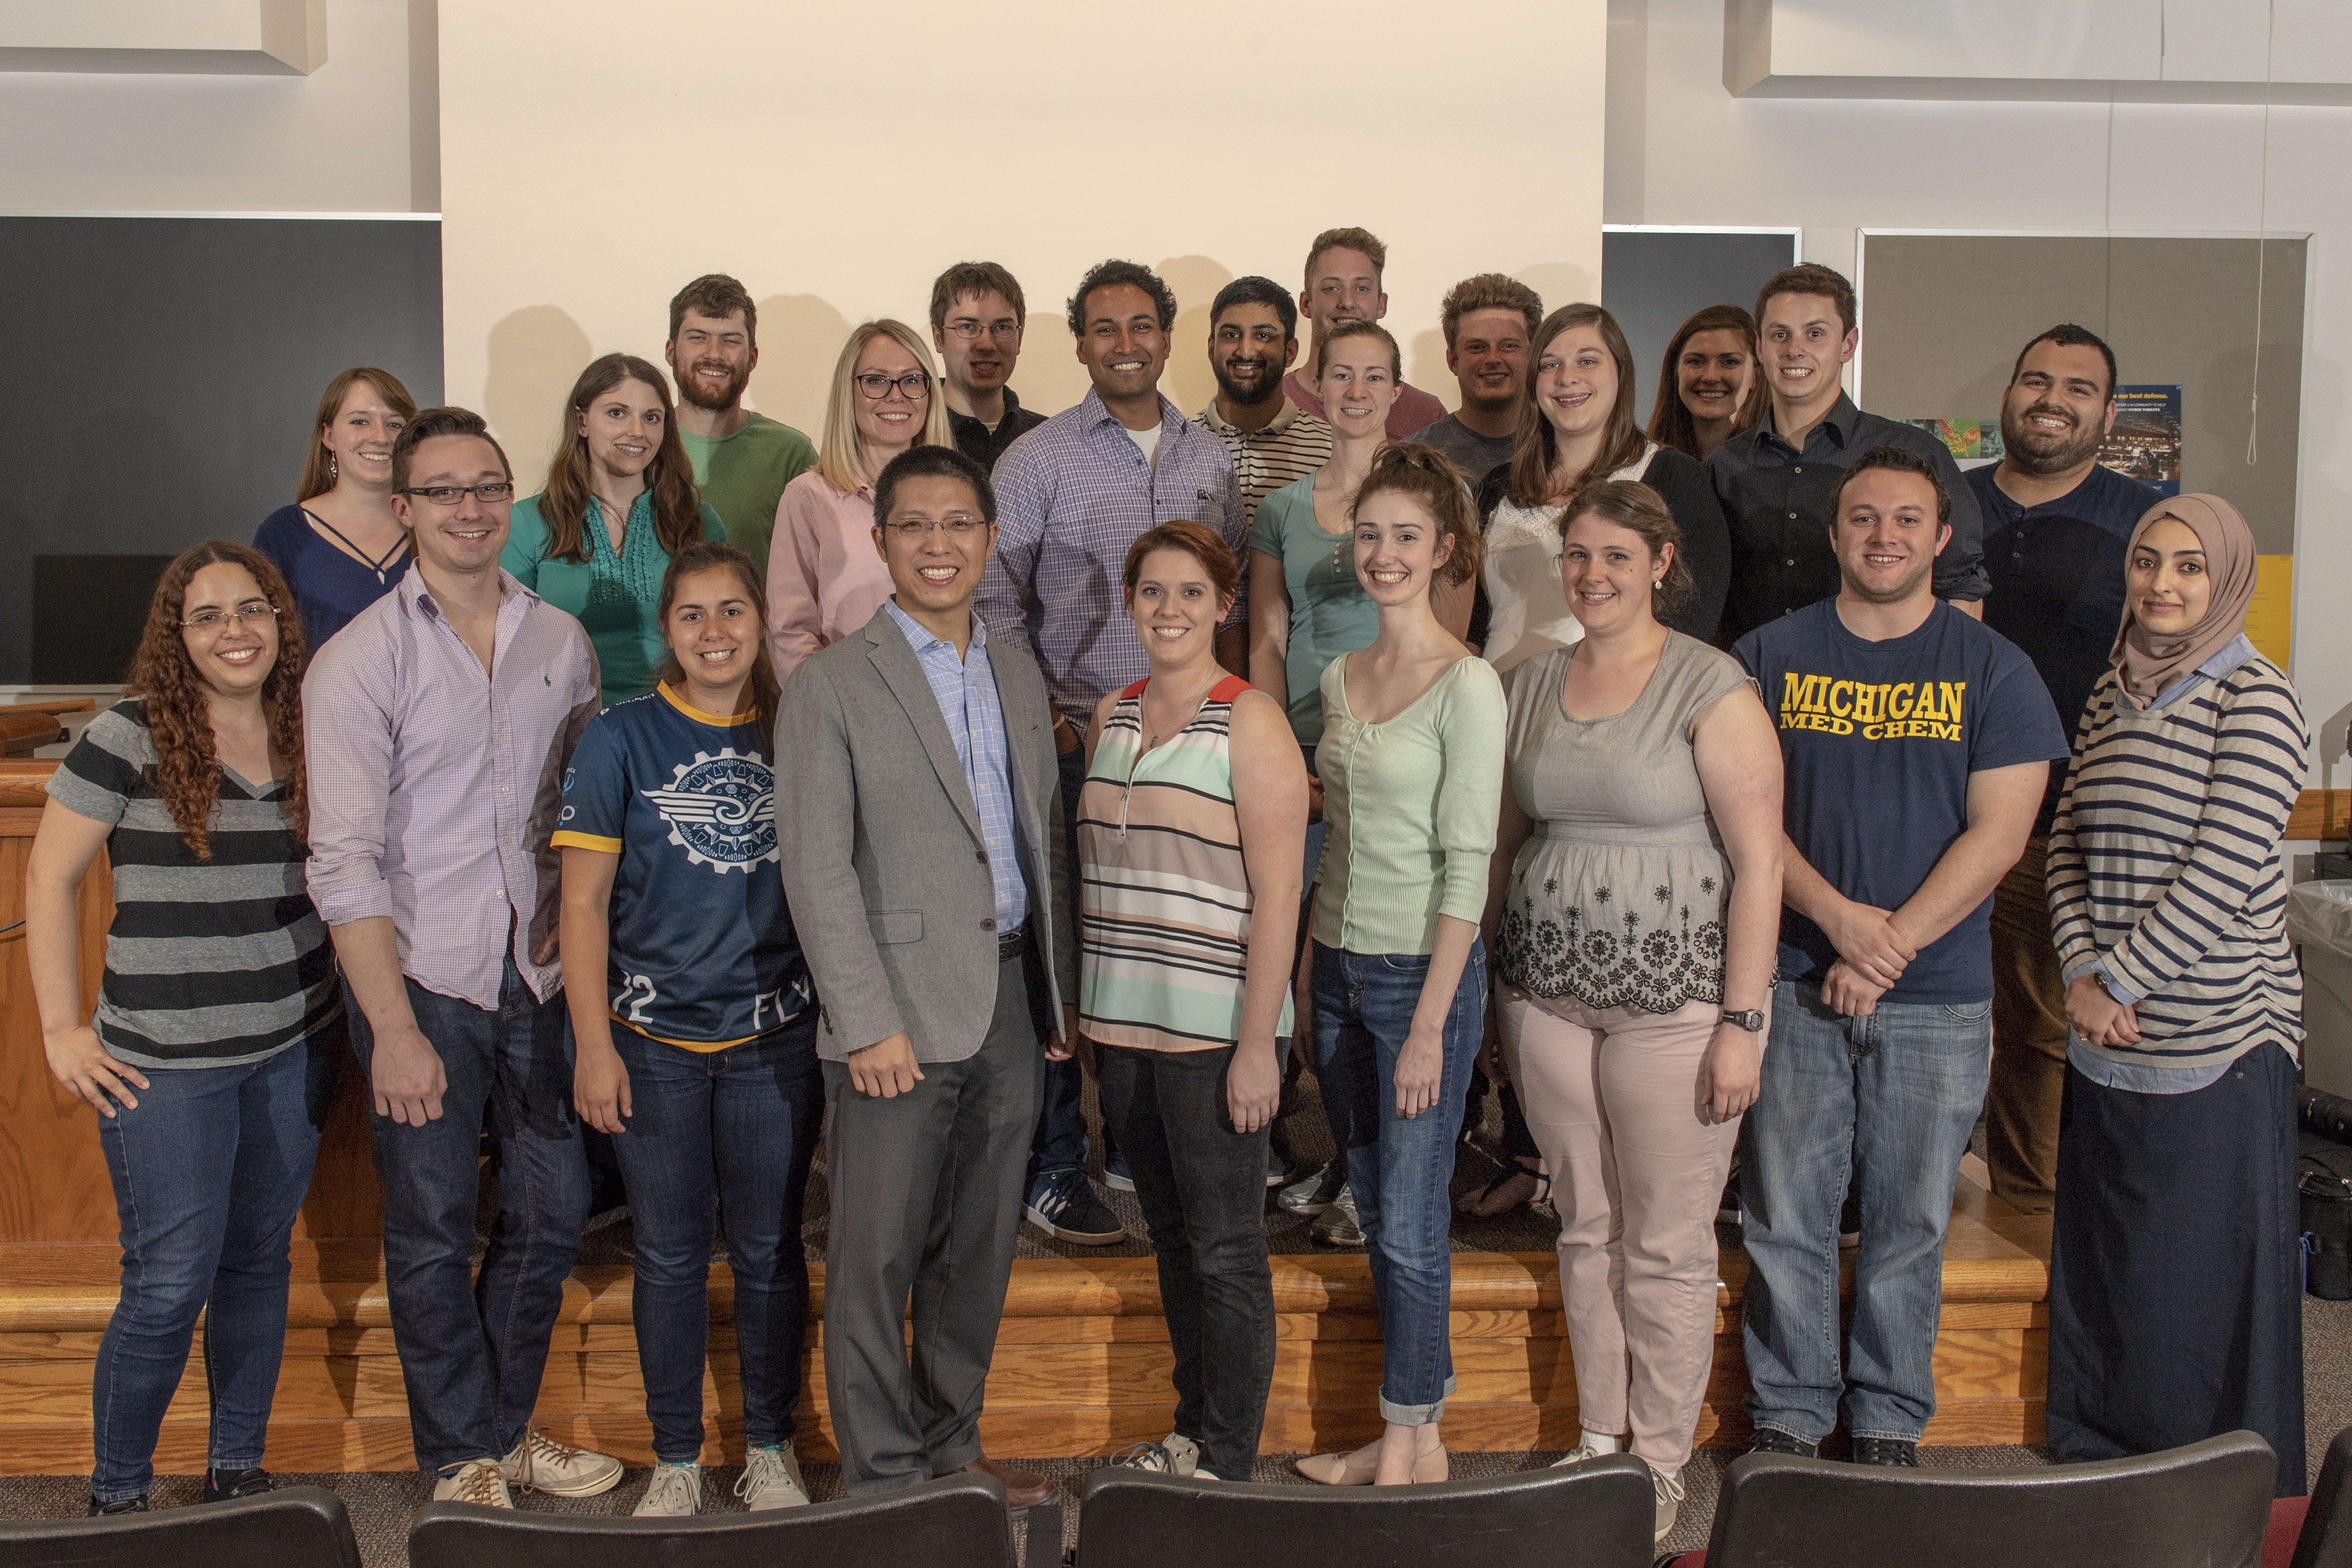 U-M MedChem students with alumnus Yousong Ding.